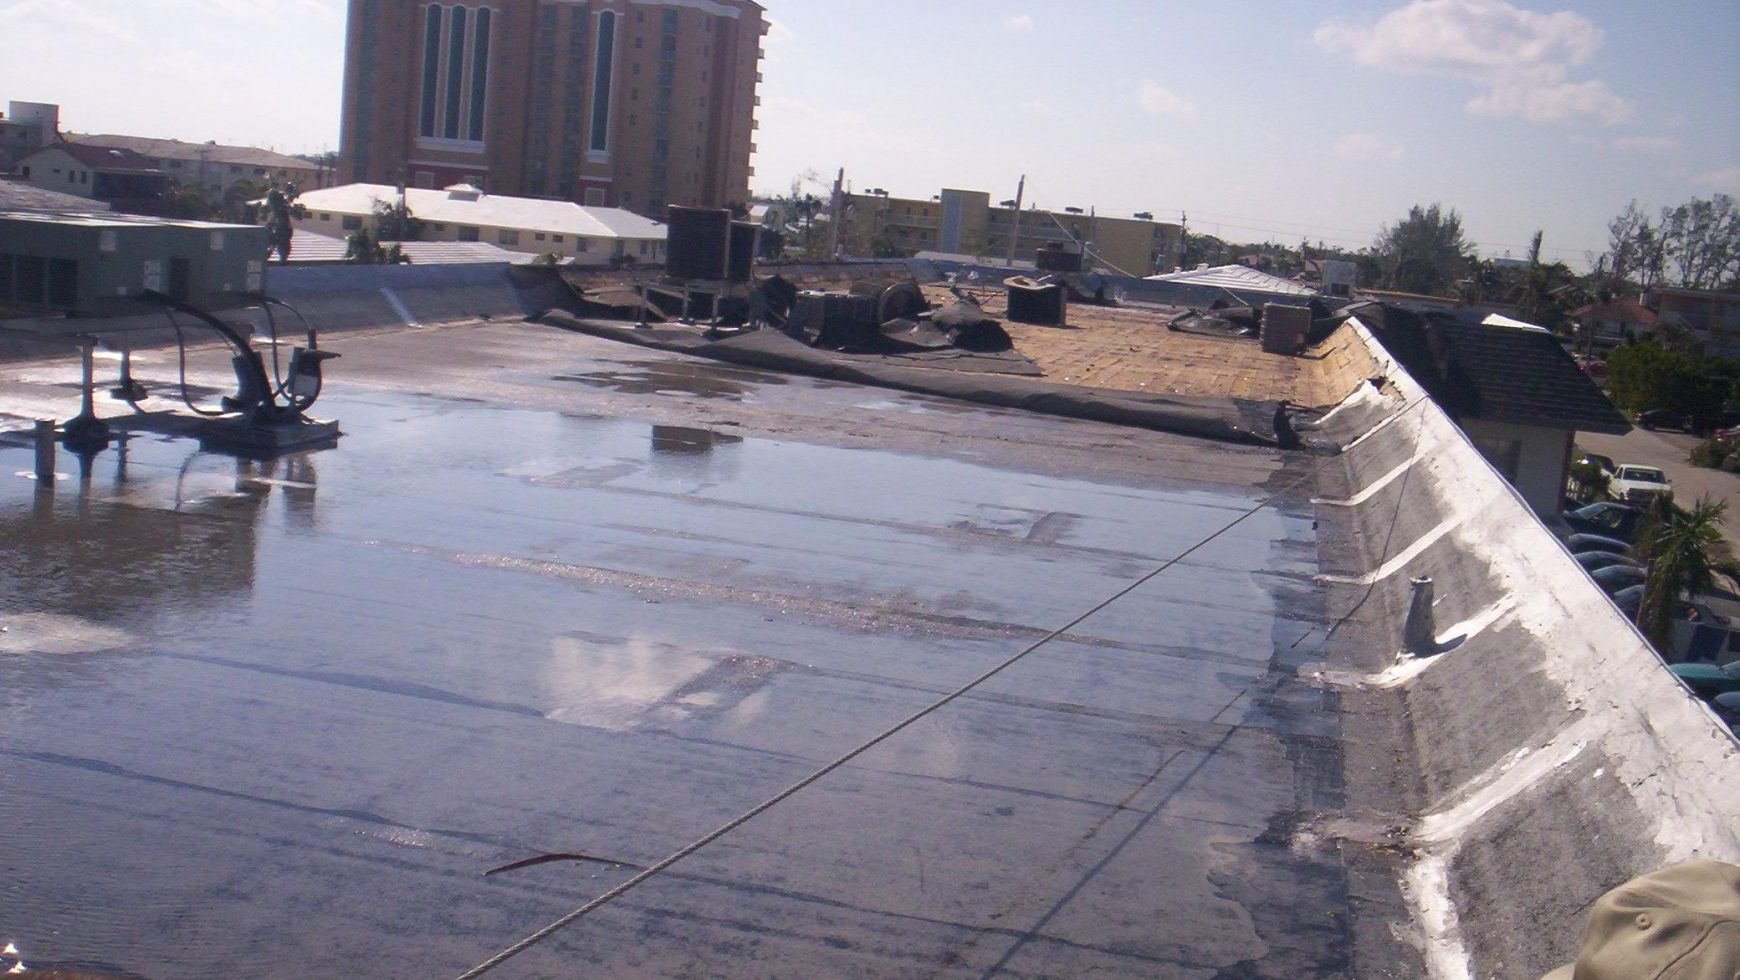 The Most Common Issues with Flat Commercial Roofs